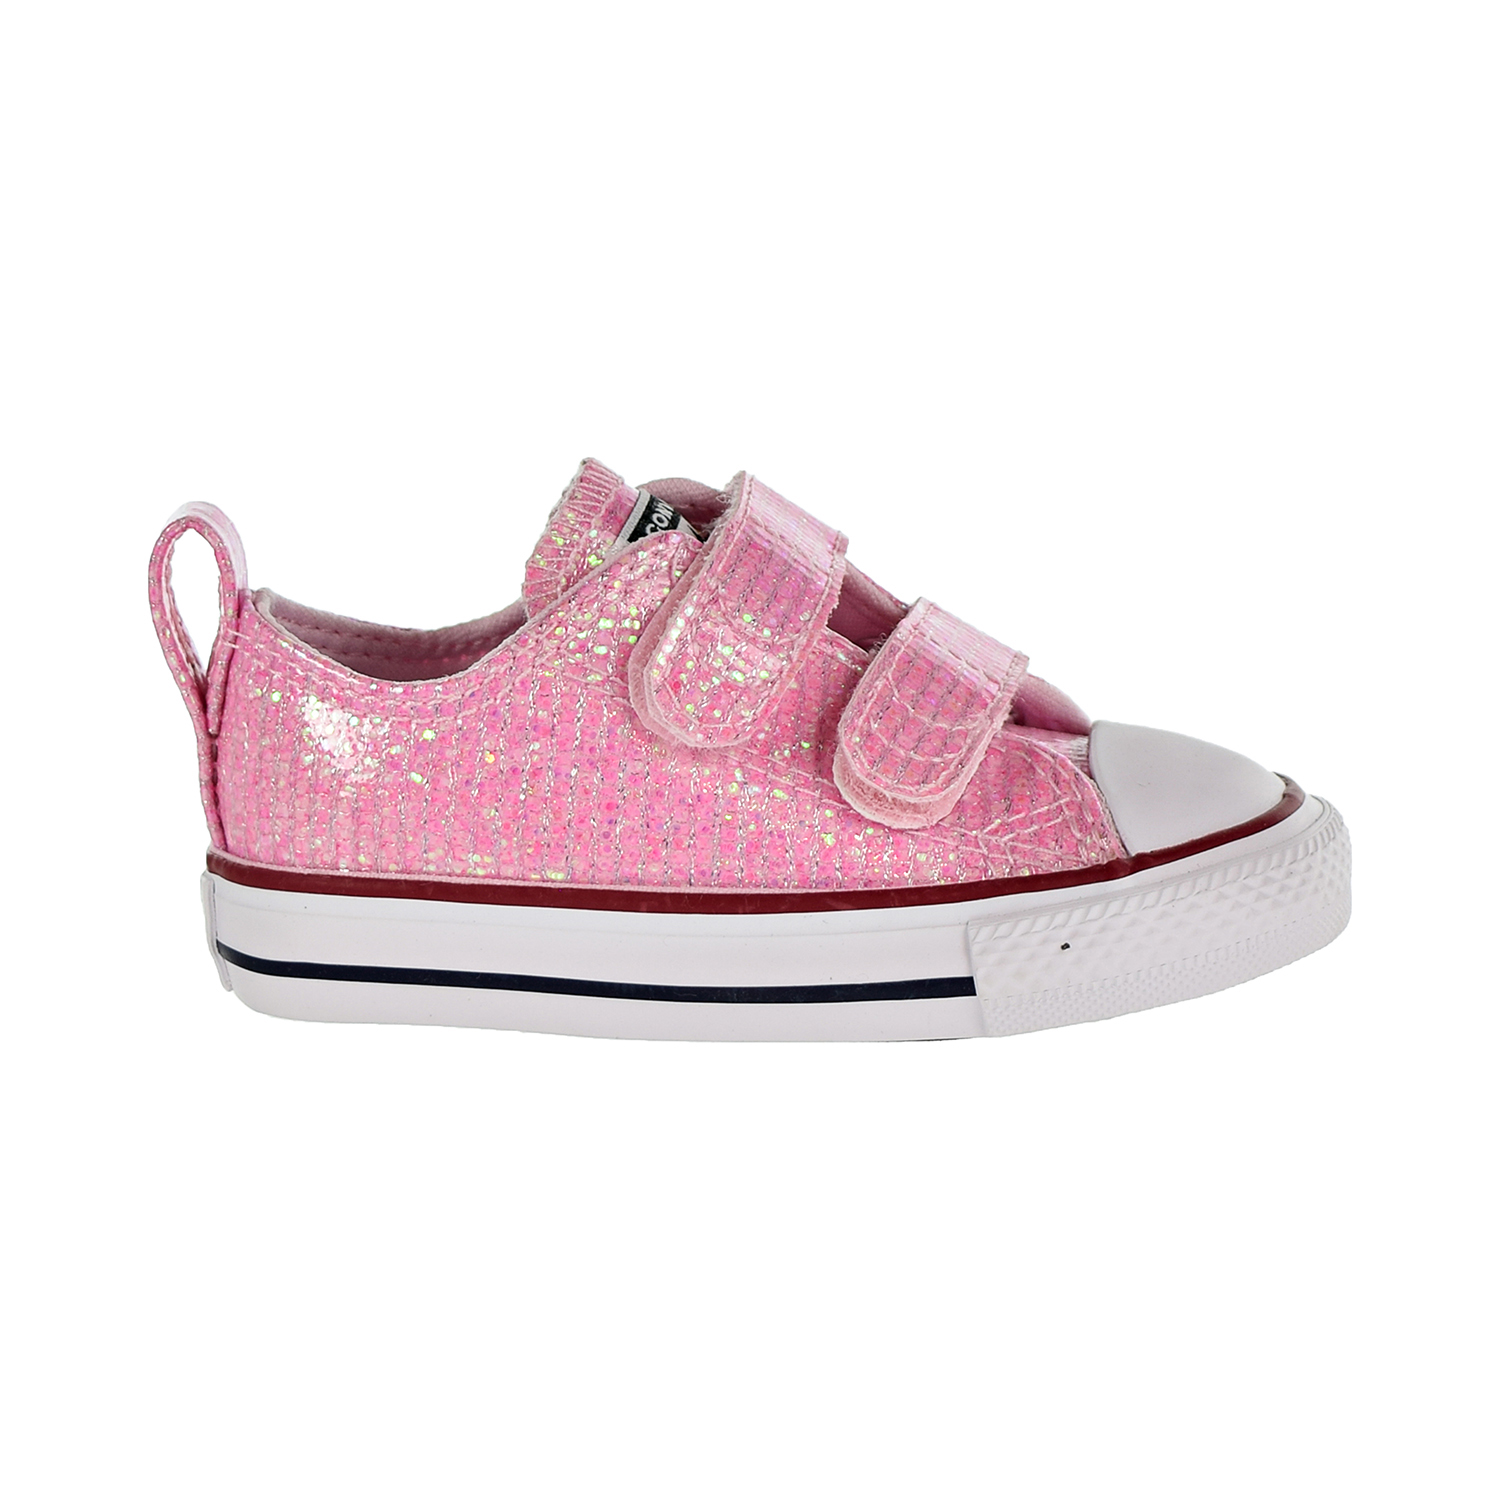 e265d176910 Details about Converse Chuck Taylor All Star 2V Ox Toddler's Shoes Pink  Foam 763550C